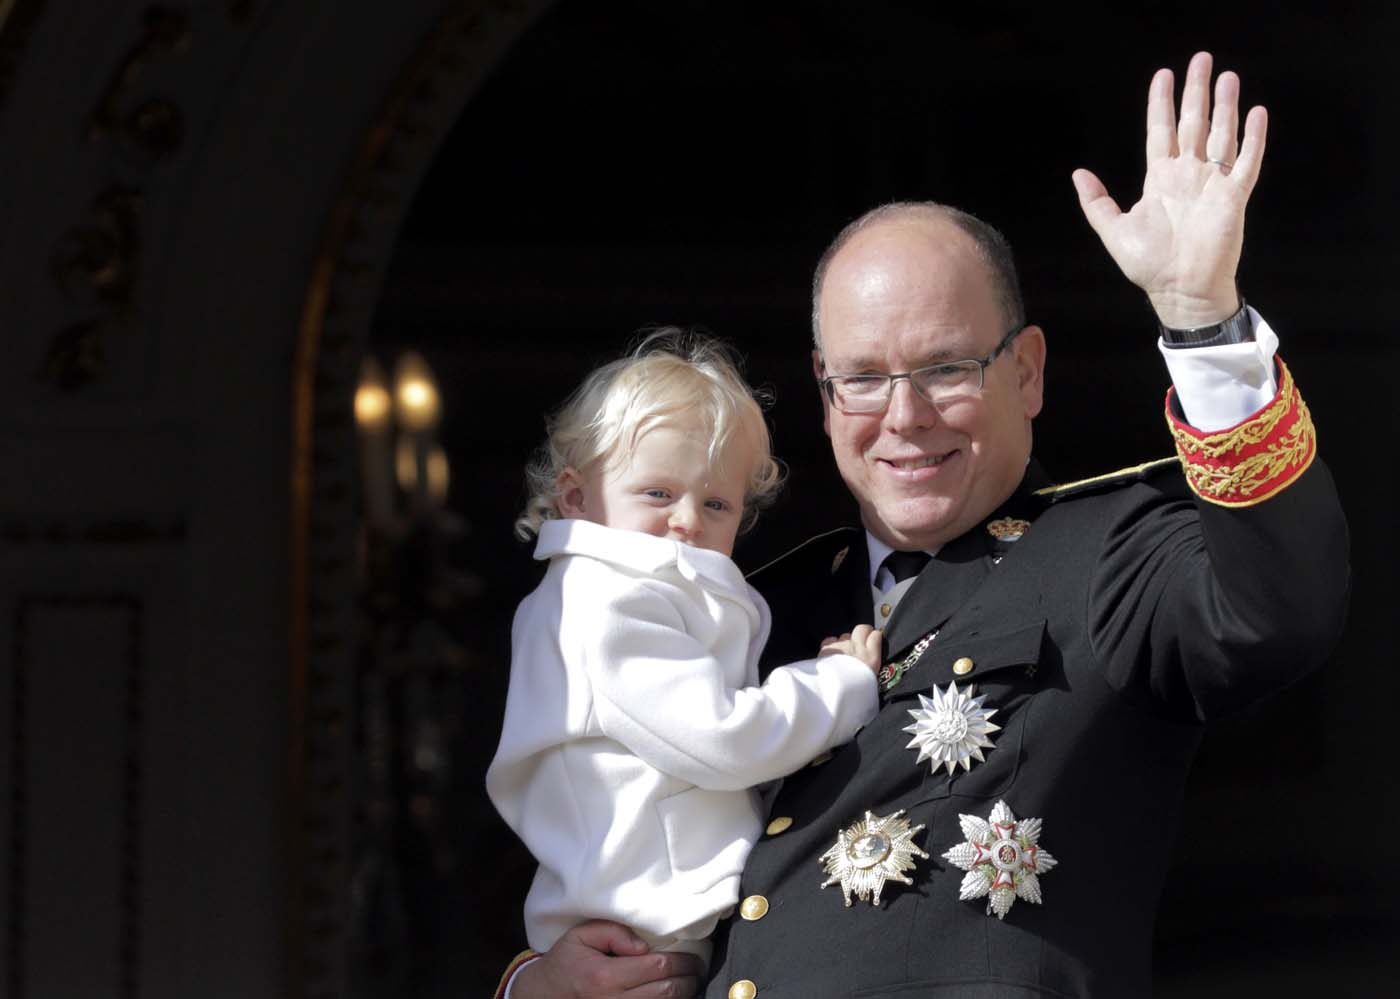 Prince Albert II of Monaco holds his son Prince Jacques as they stands at the Palace Balcony during Monaco's National Day November 19, 2016. REUTERS/Eric Gaillard